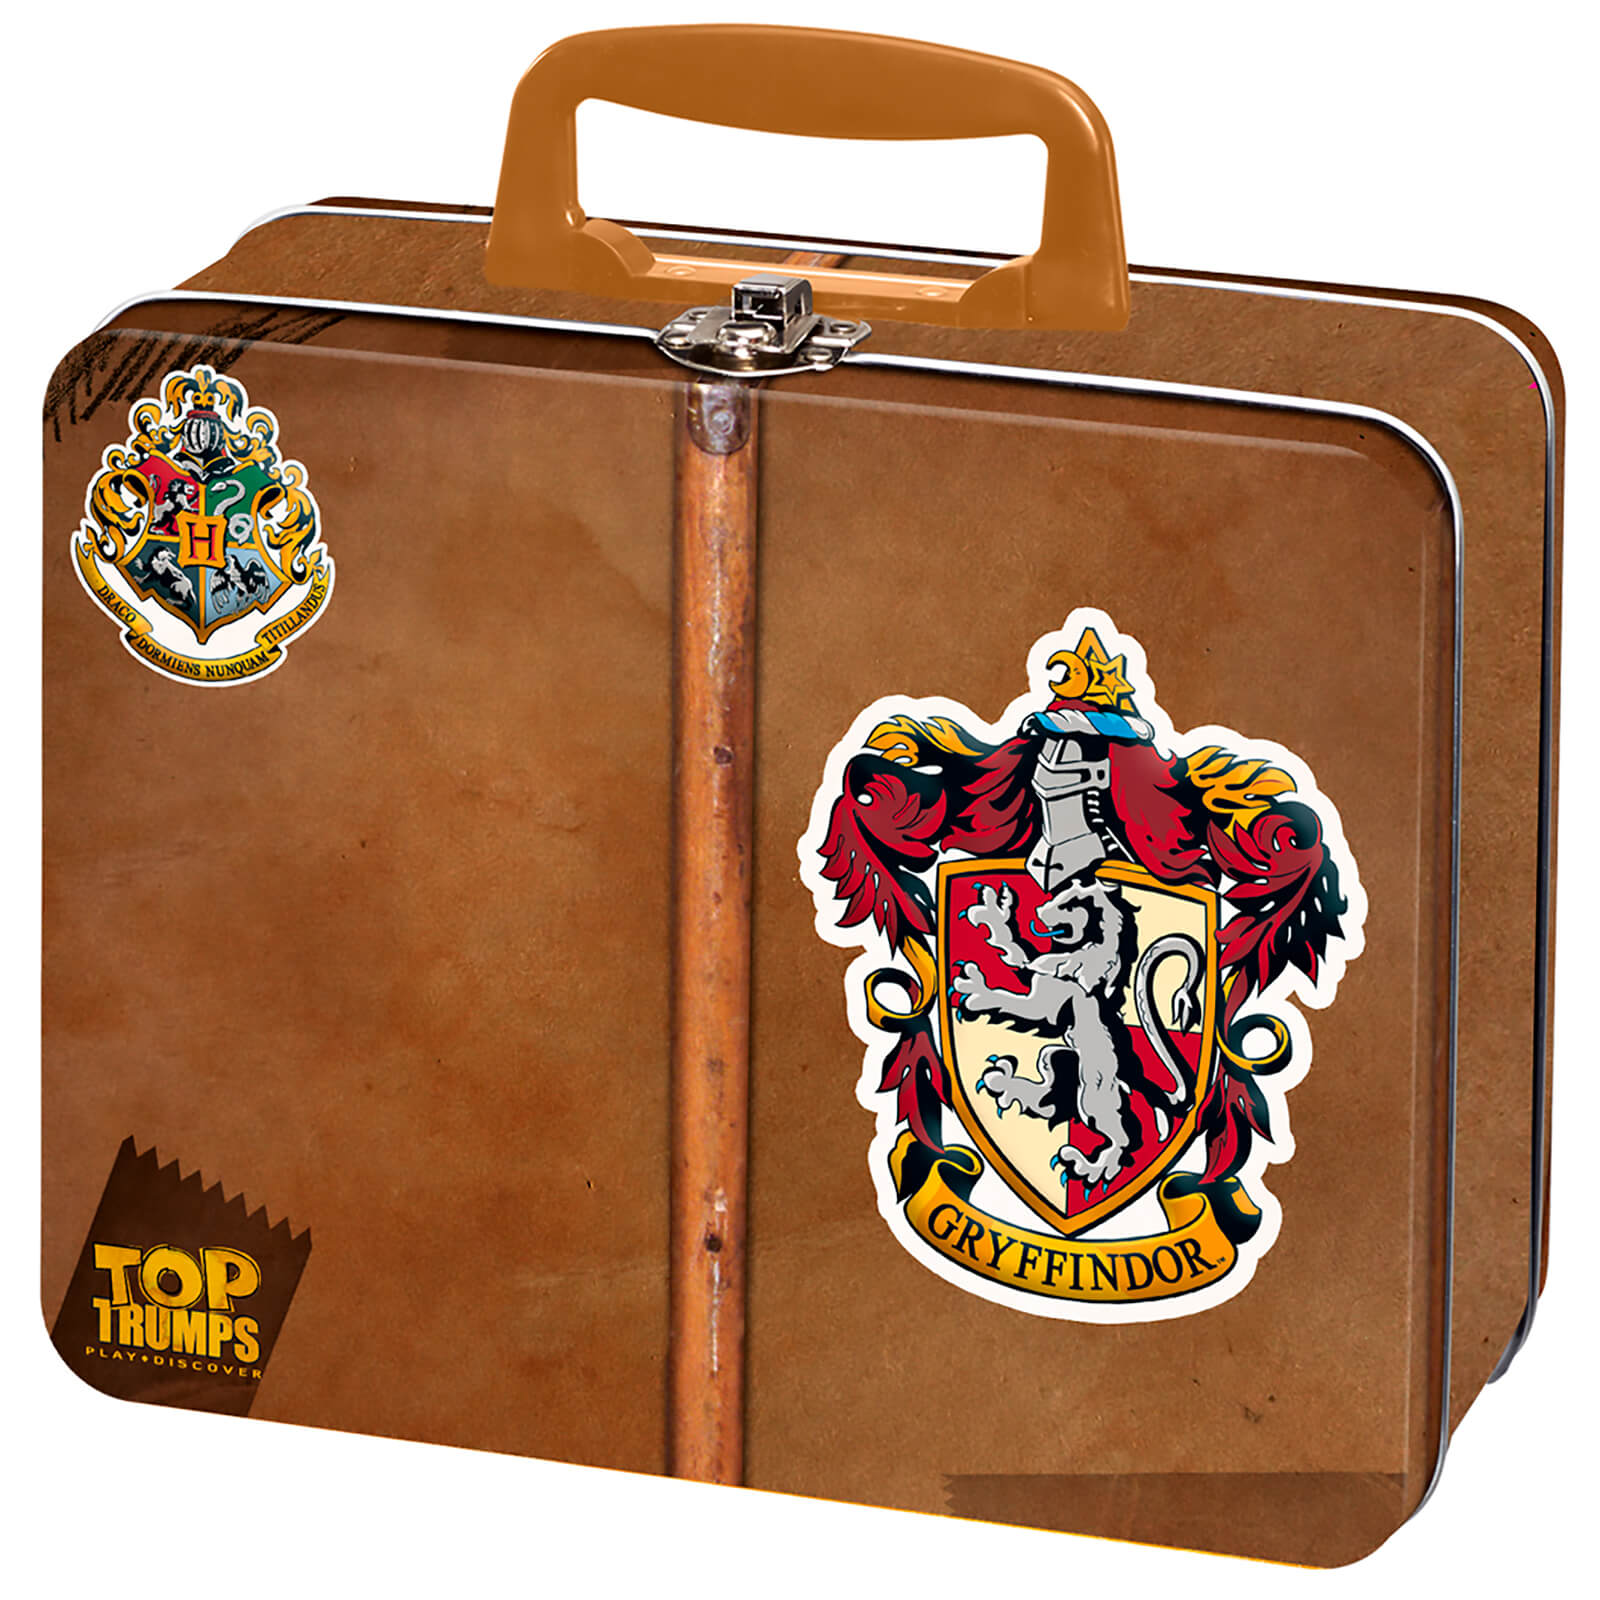 Image of Top Trumps Collector's Tin Card Game - Harry Potter Gryffindor Edition